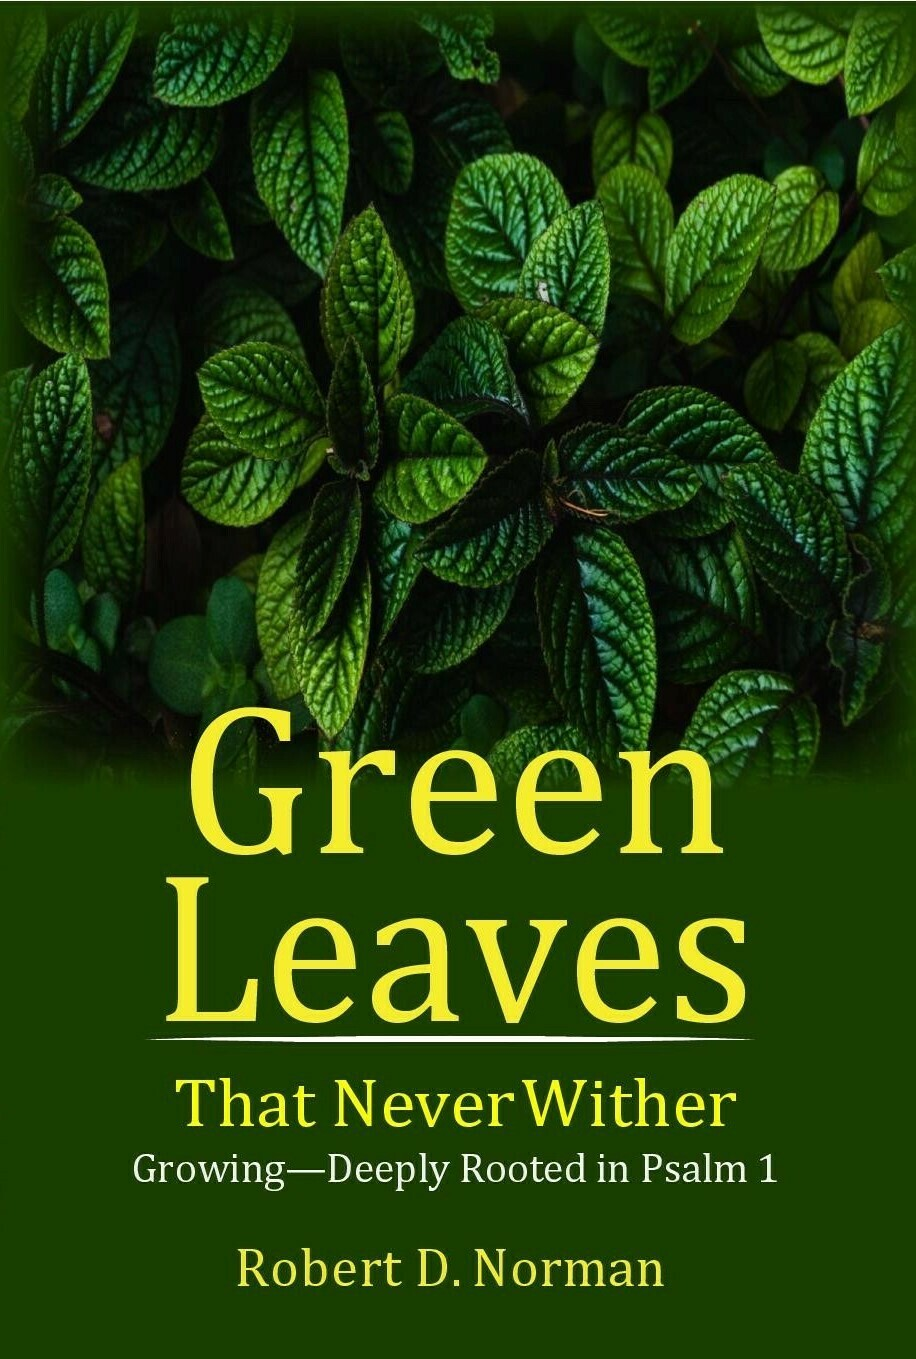 Green Leaves That Never Wither: Growing--Deeply Rooted in Psalm 1 by Robert D. Norman (Soft-Cover & E-Book)